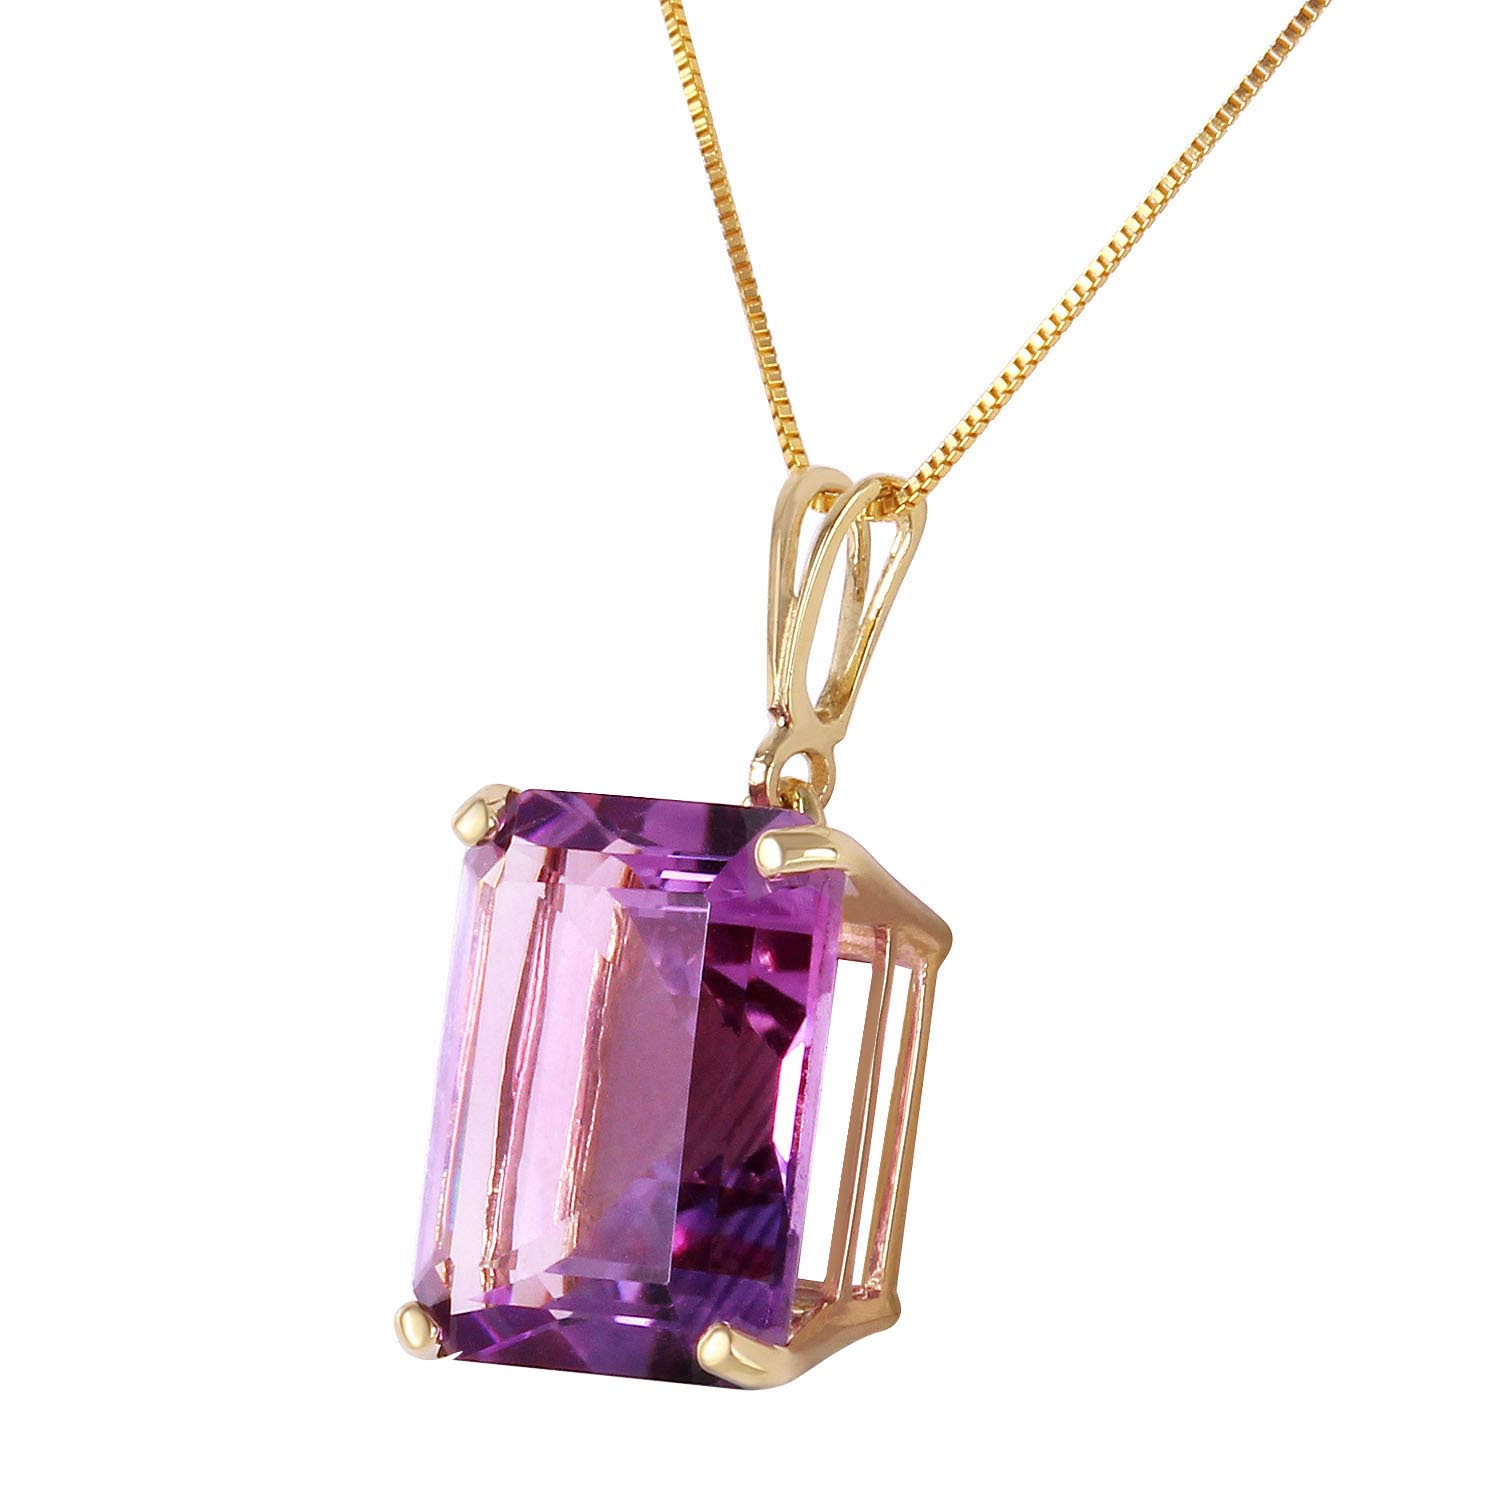 Amethyst Pendant Necklace 6.5ct in 9ct Gold